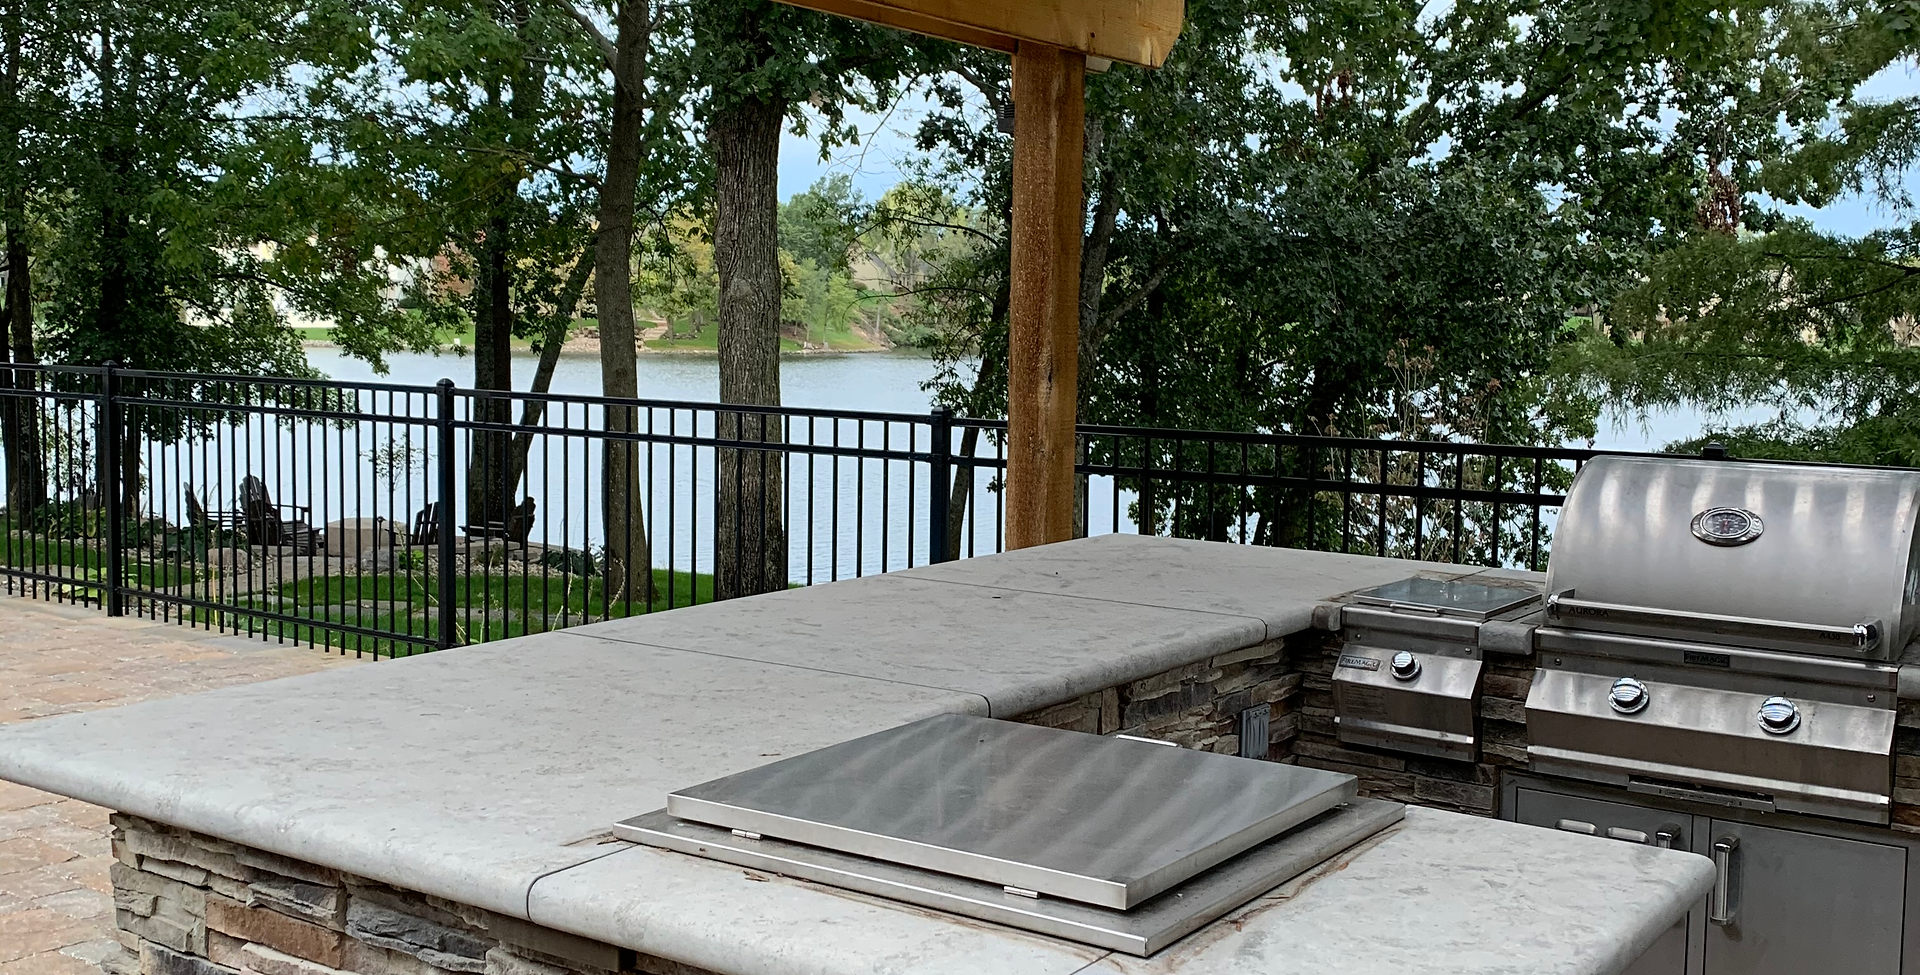 Drop-in drink cooler in outdoor kitchen.